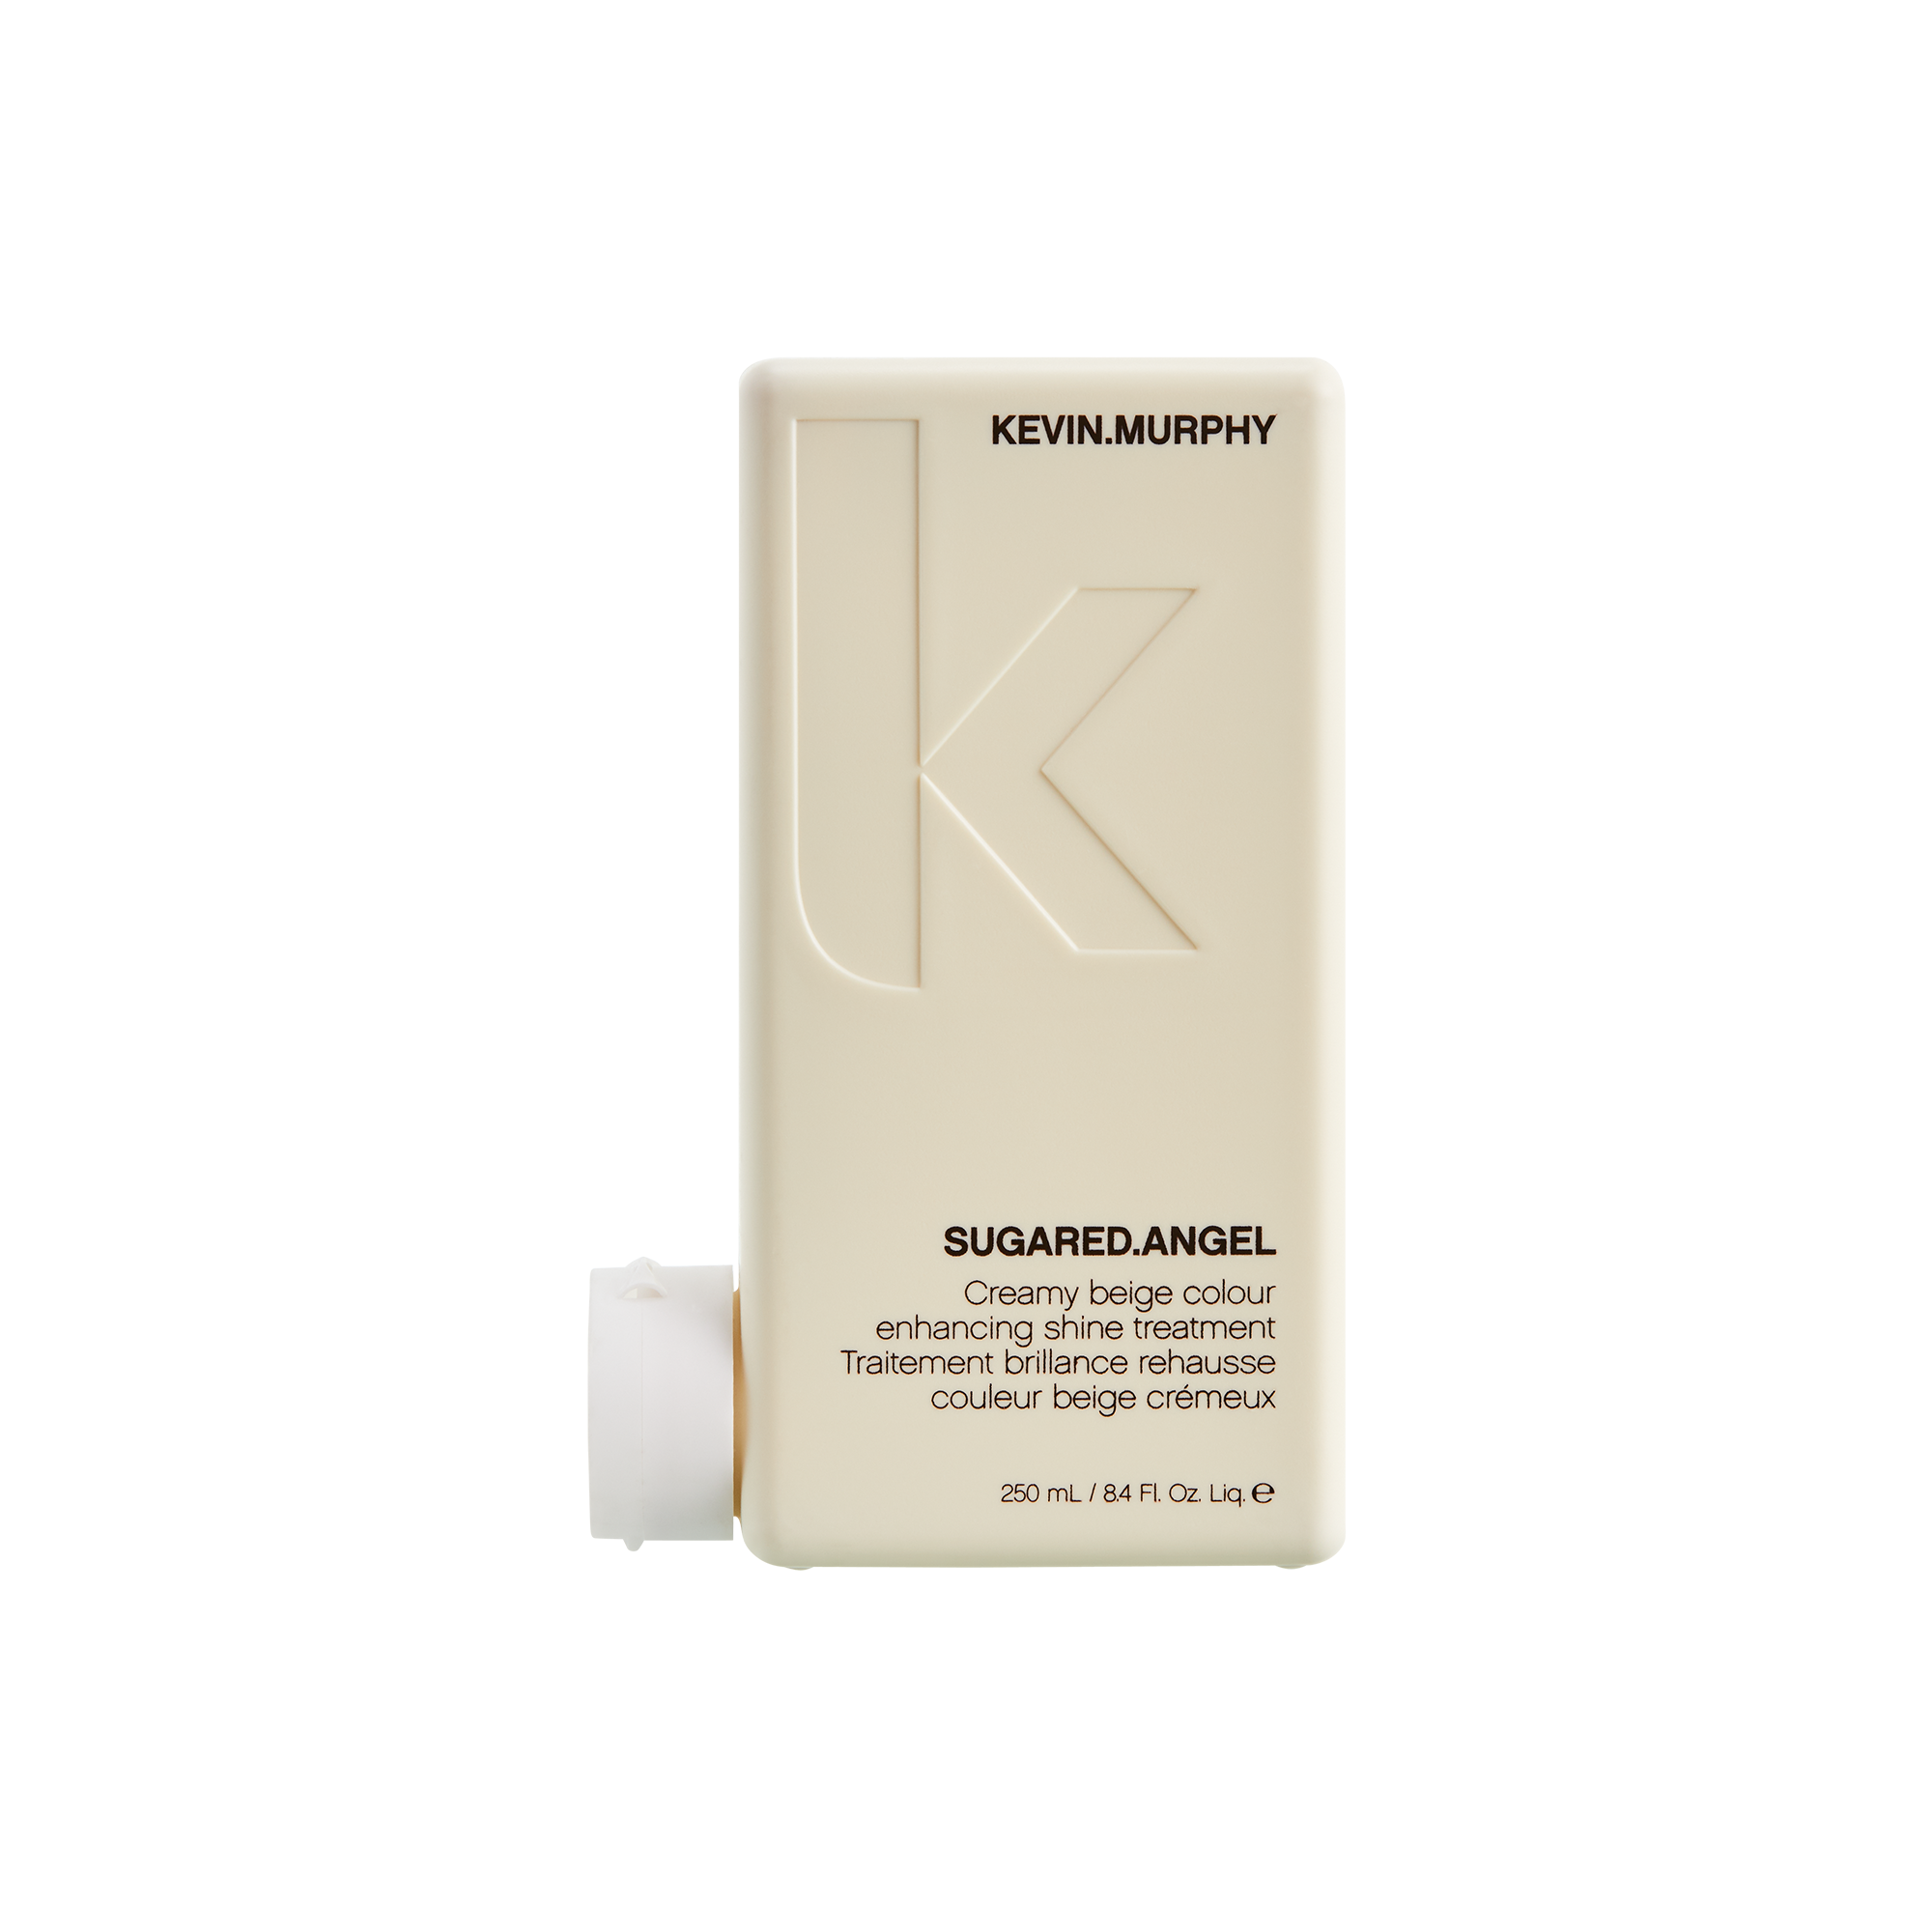 Kevin Murphy - Sugared.Angel 250 ml.